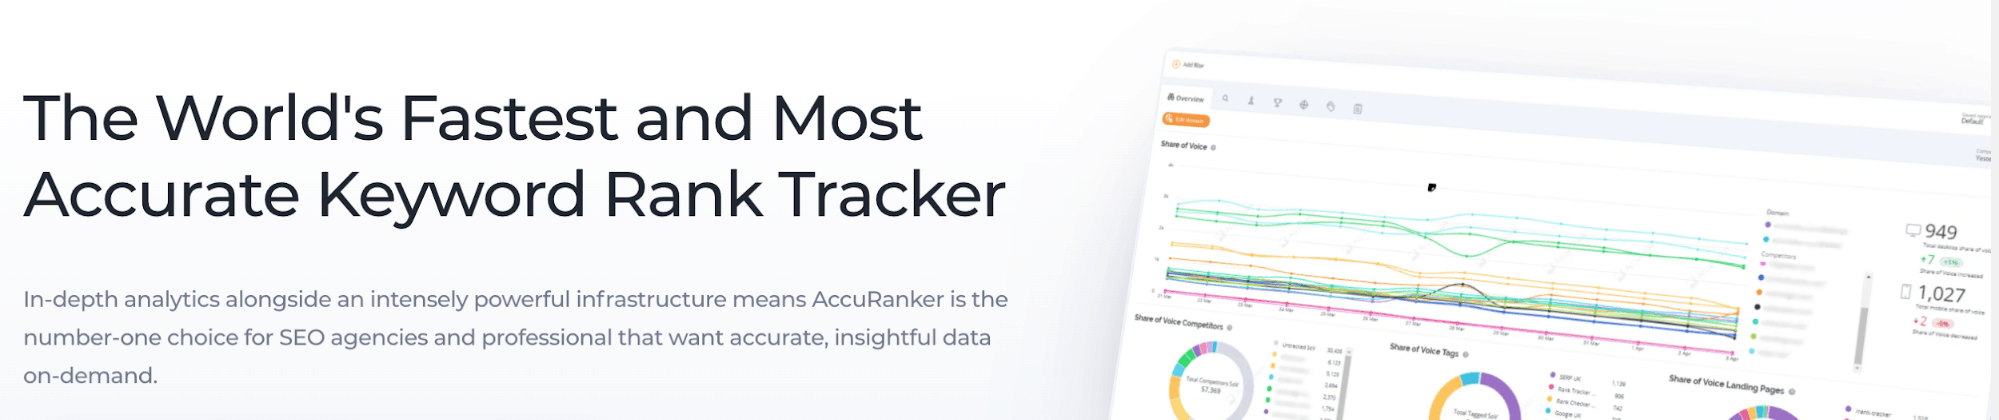 AccuRanker Landing Page Snippet